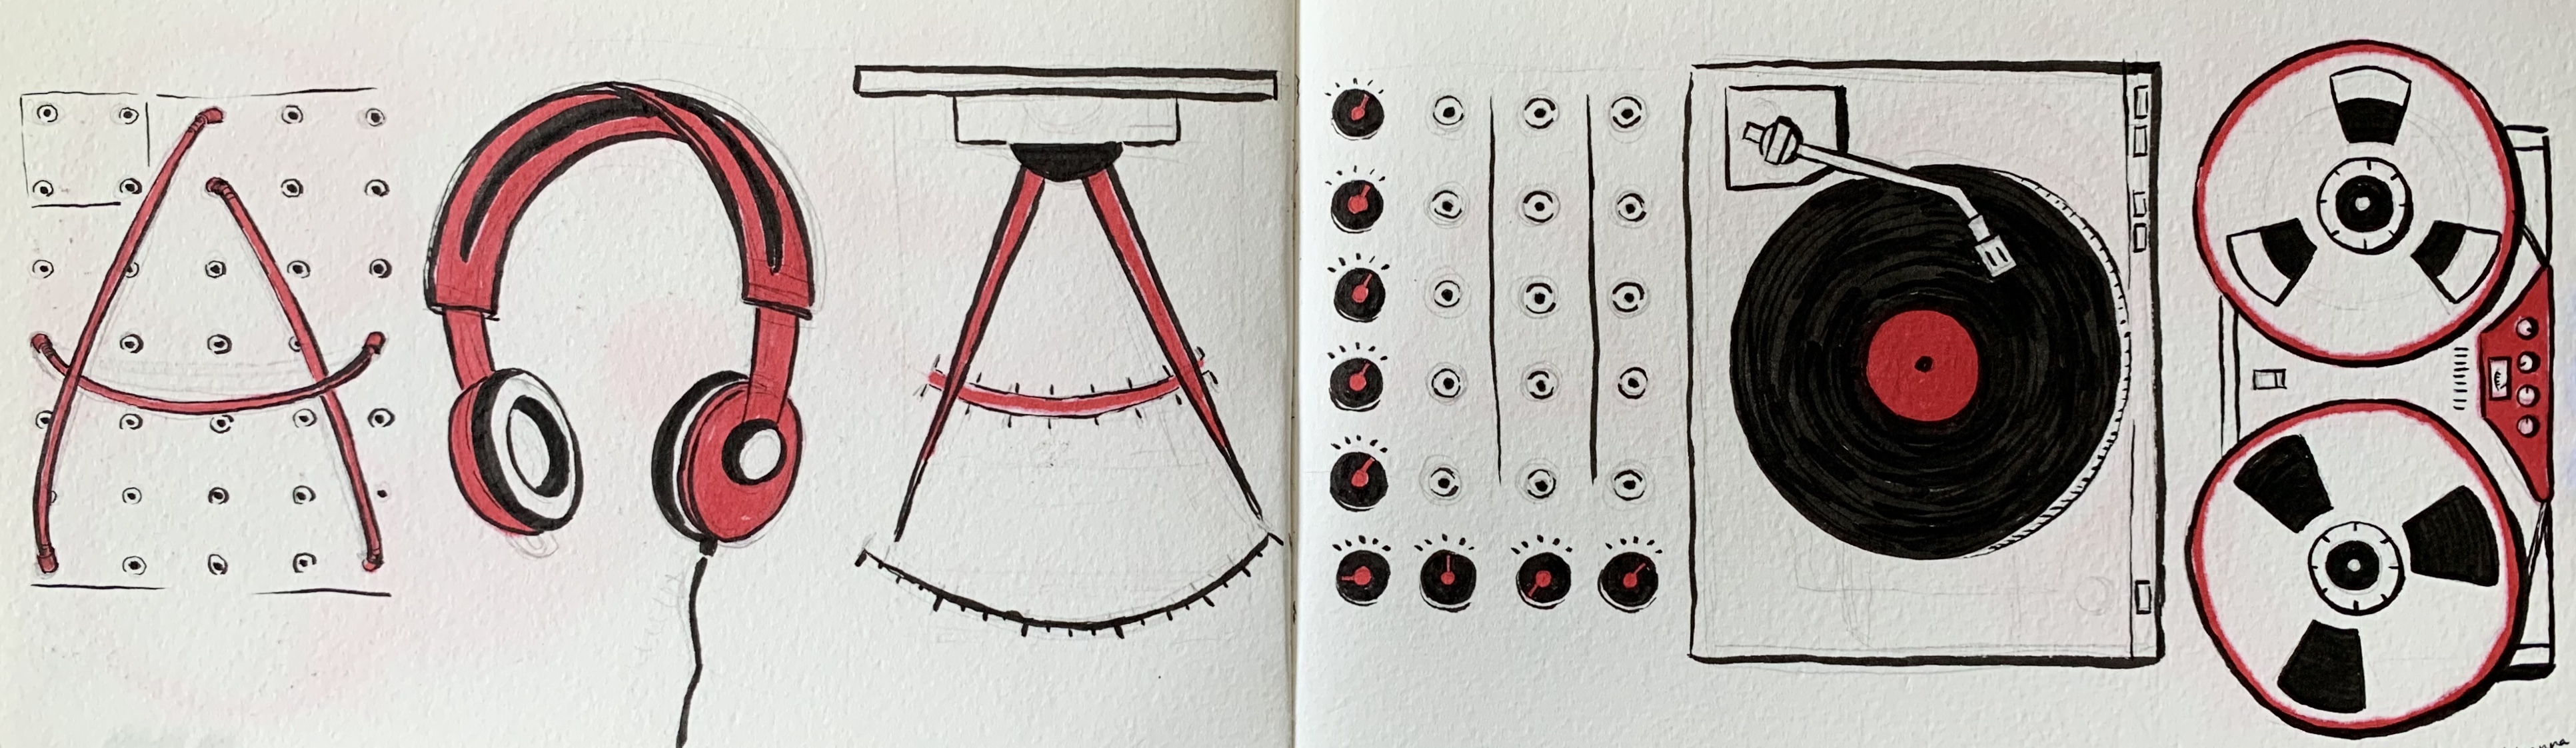 a google doodle influenced drawing by alleanna harris of the word analog composed of wires, headphones, knobs, a turn table, and a reel to reel.